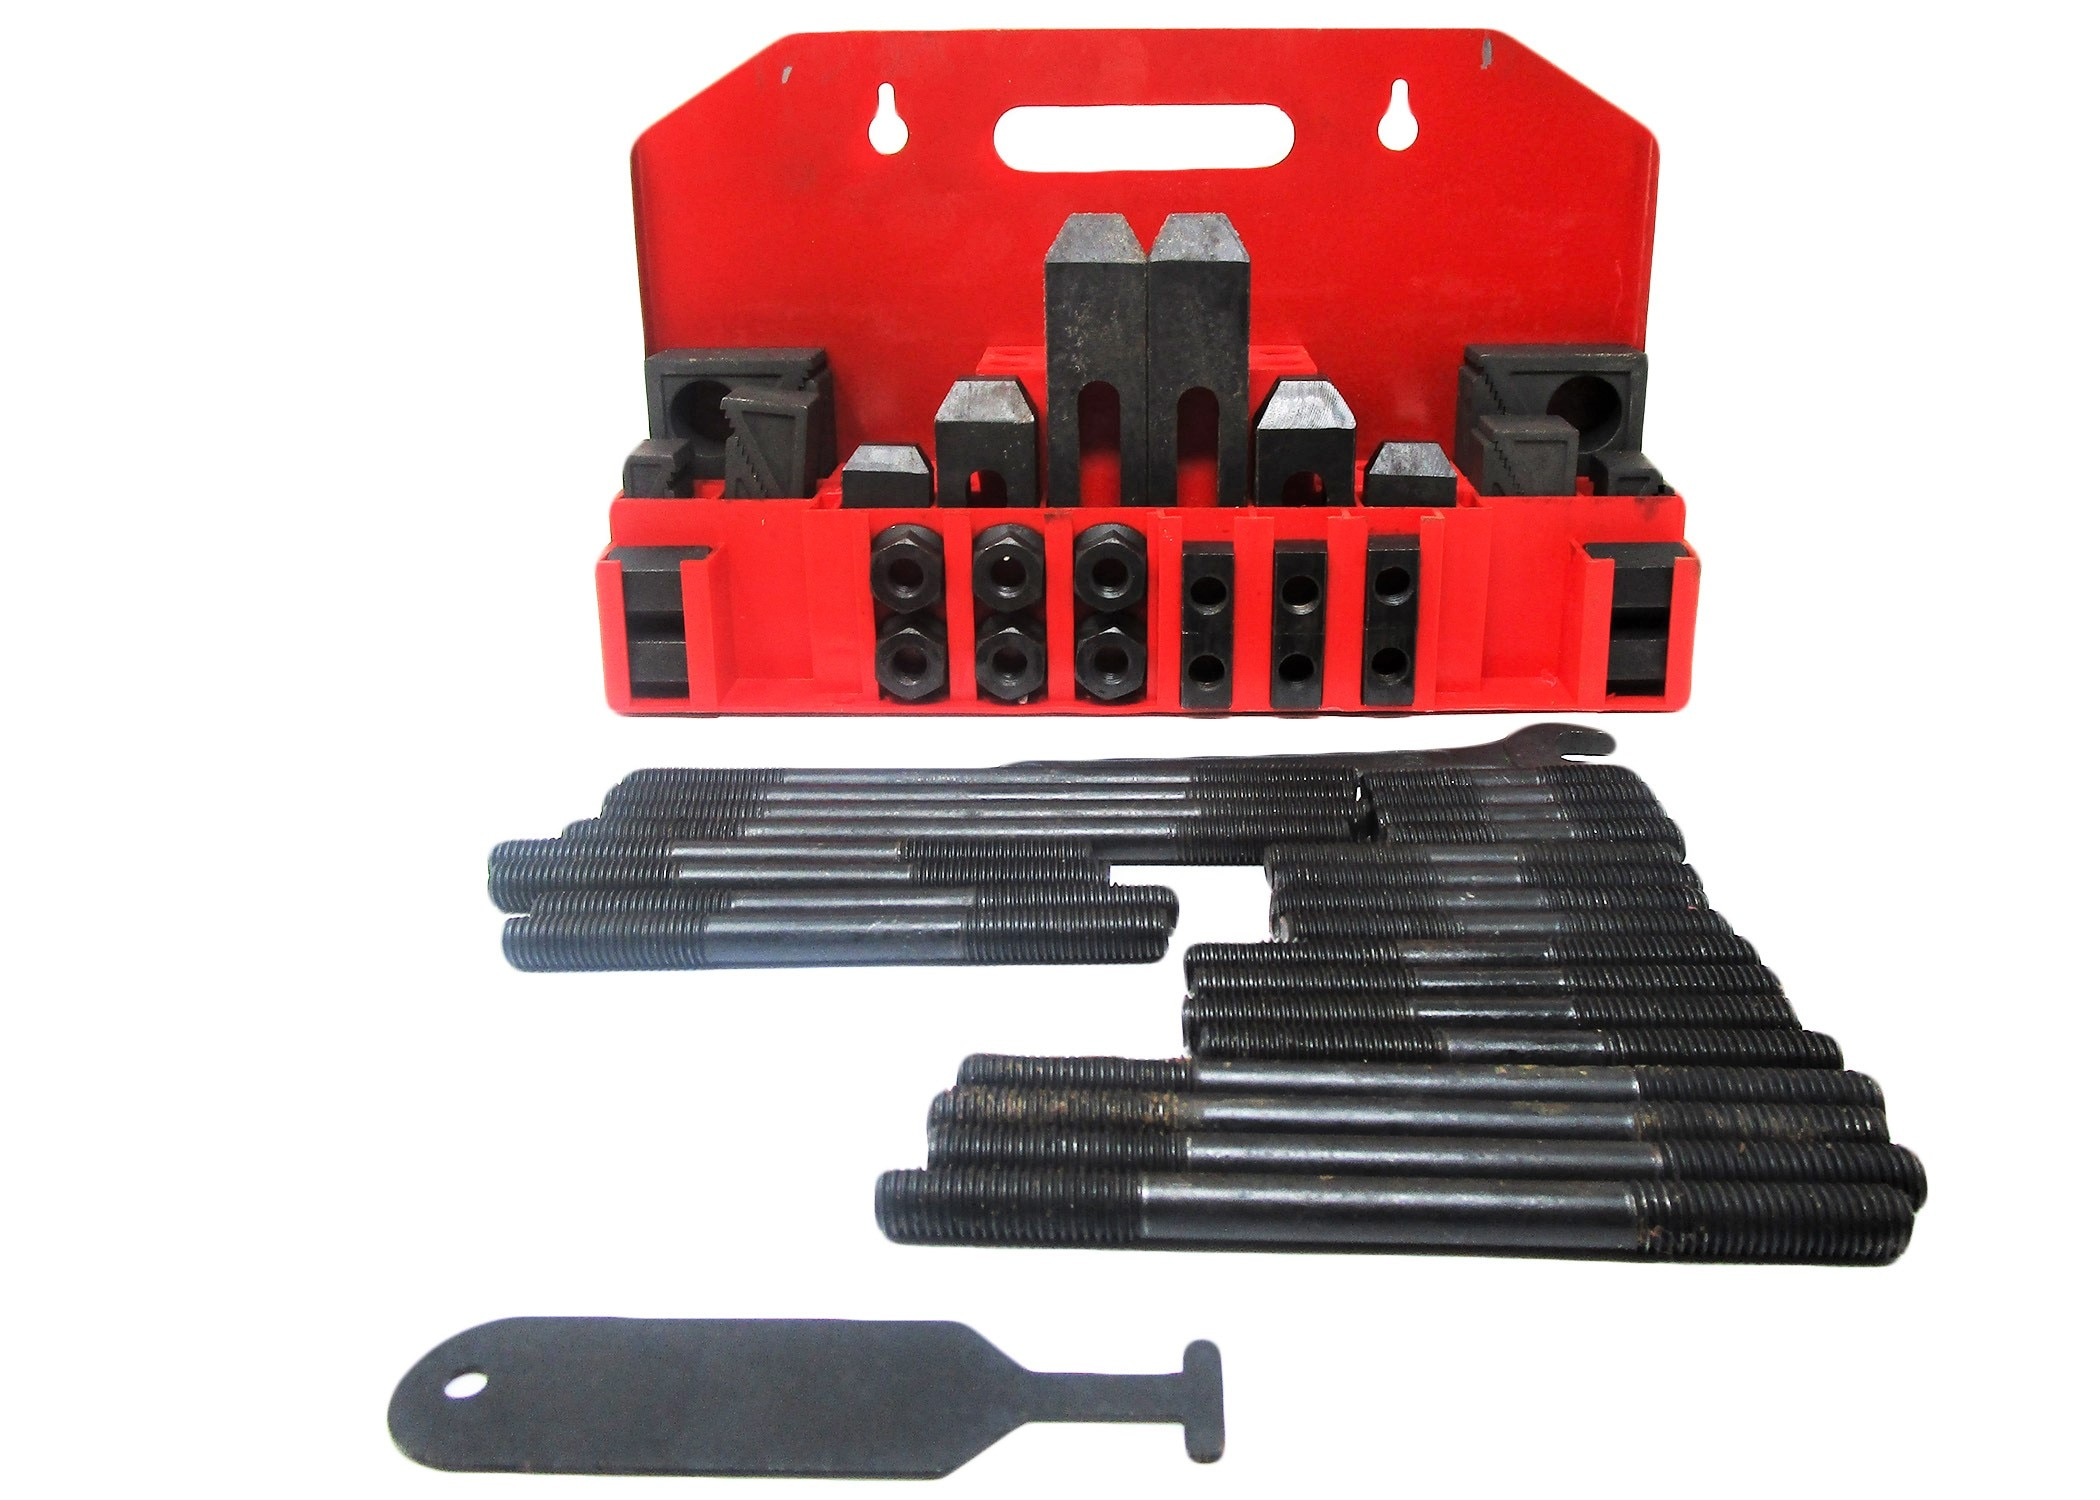 "CK-12, 58-Piece Clamping Kit with Tray for 5/8"" T-Slot"